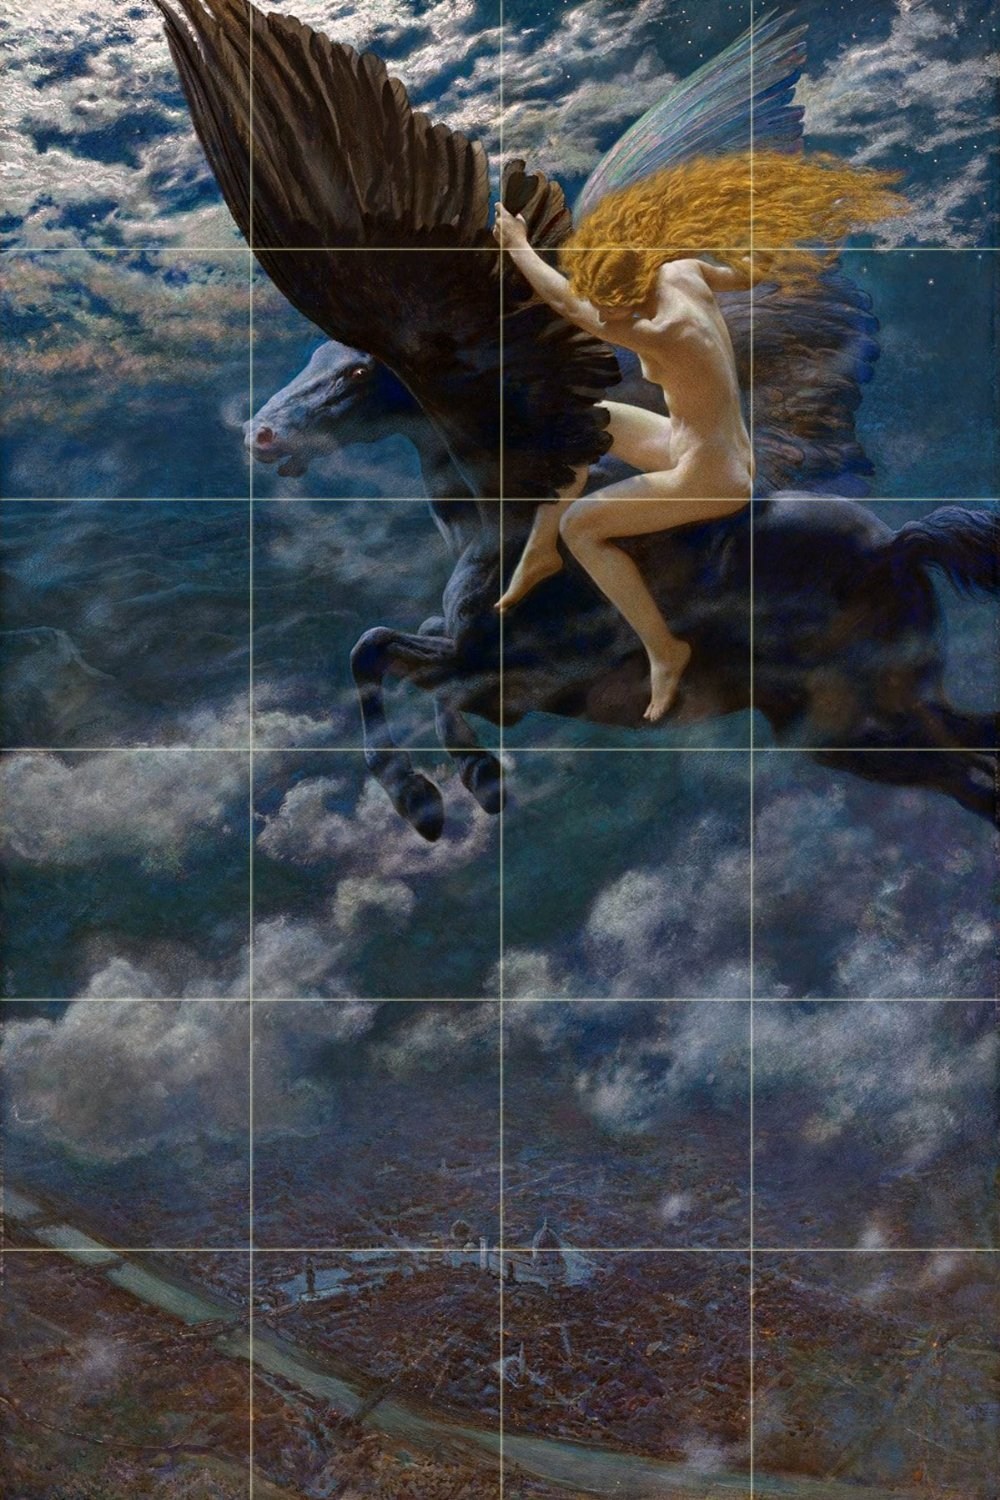 Dream Idyll (A Valkyrie) by Edward Robert Hughes Tile Mural Kitchen Bathroom Wall Backsplash Behind Stove Range Sink Splashback 6x4 4'' Marble, Matte